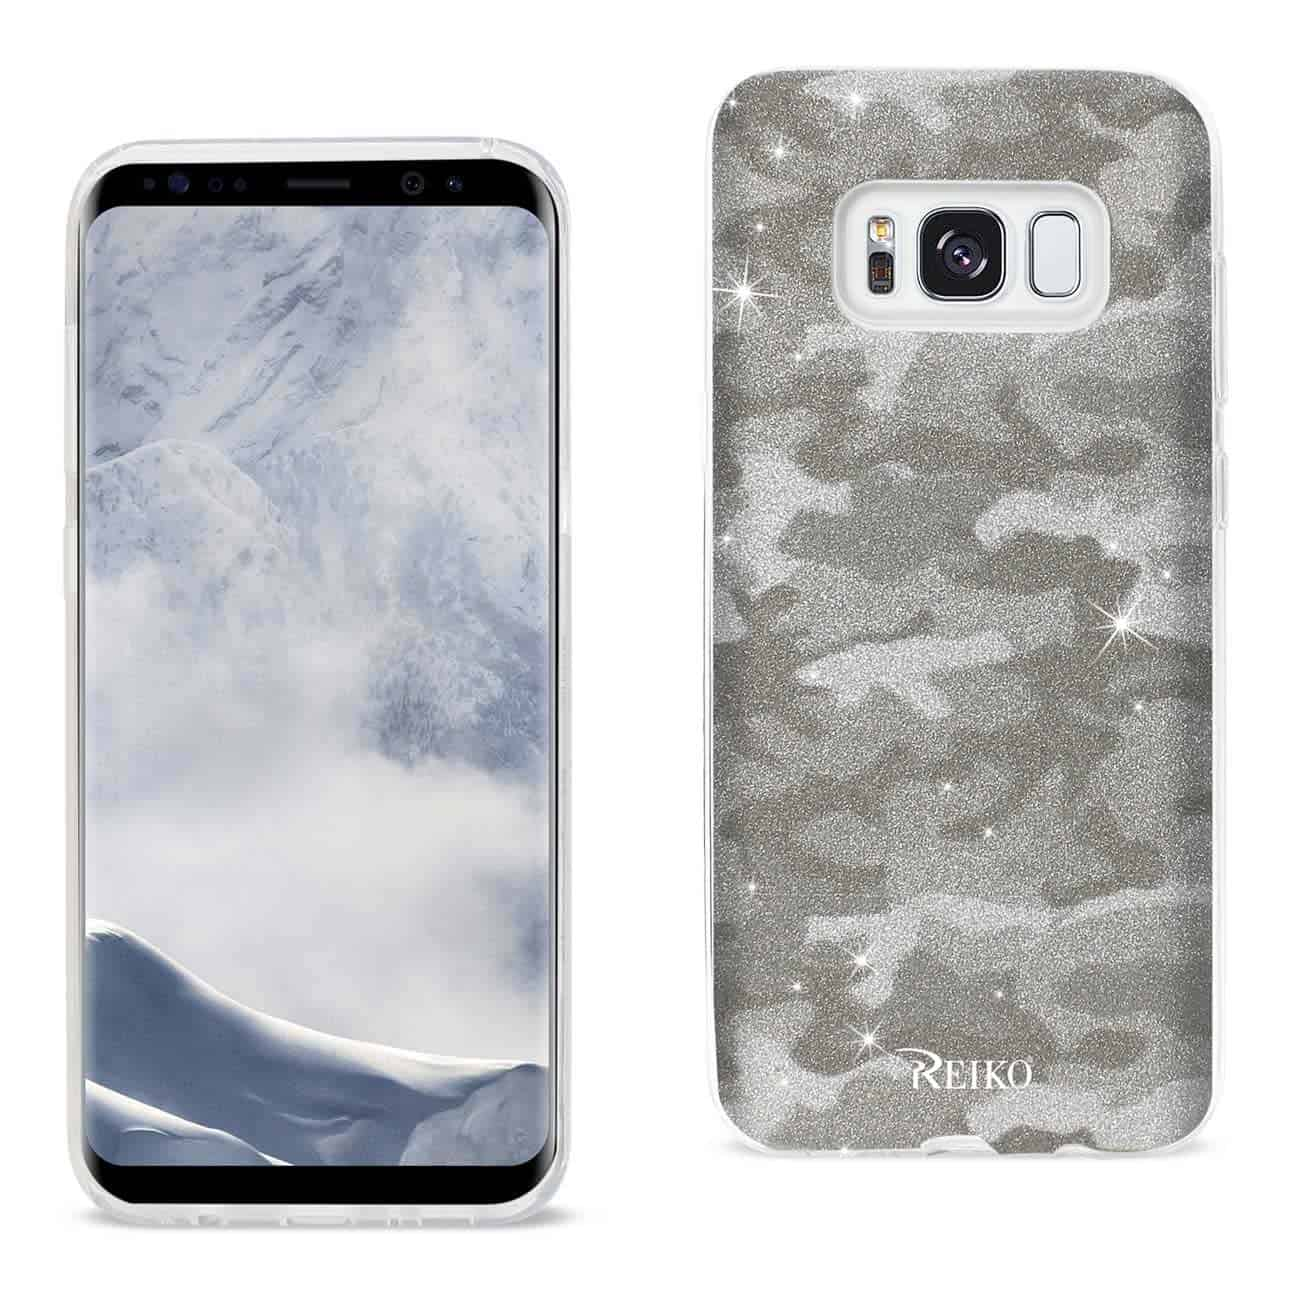 SAMSUNG GALAXY S8 EDGE/ S8 PLUS SHINE GLITTER SHIMMER CAMOUFLAGE HYBRID CASE IN BROWN